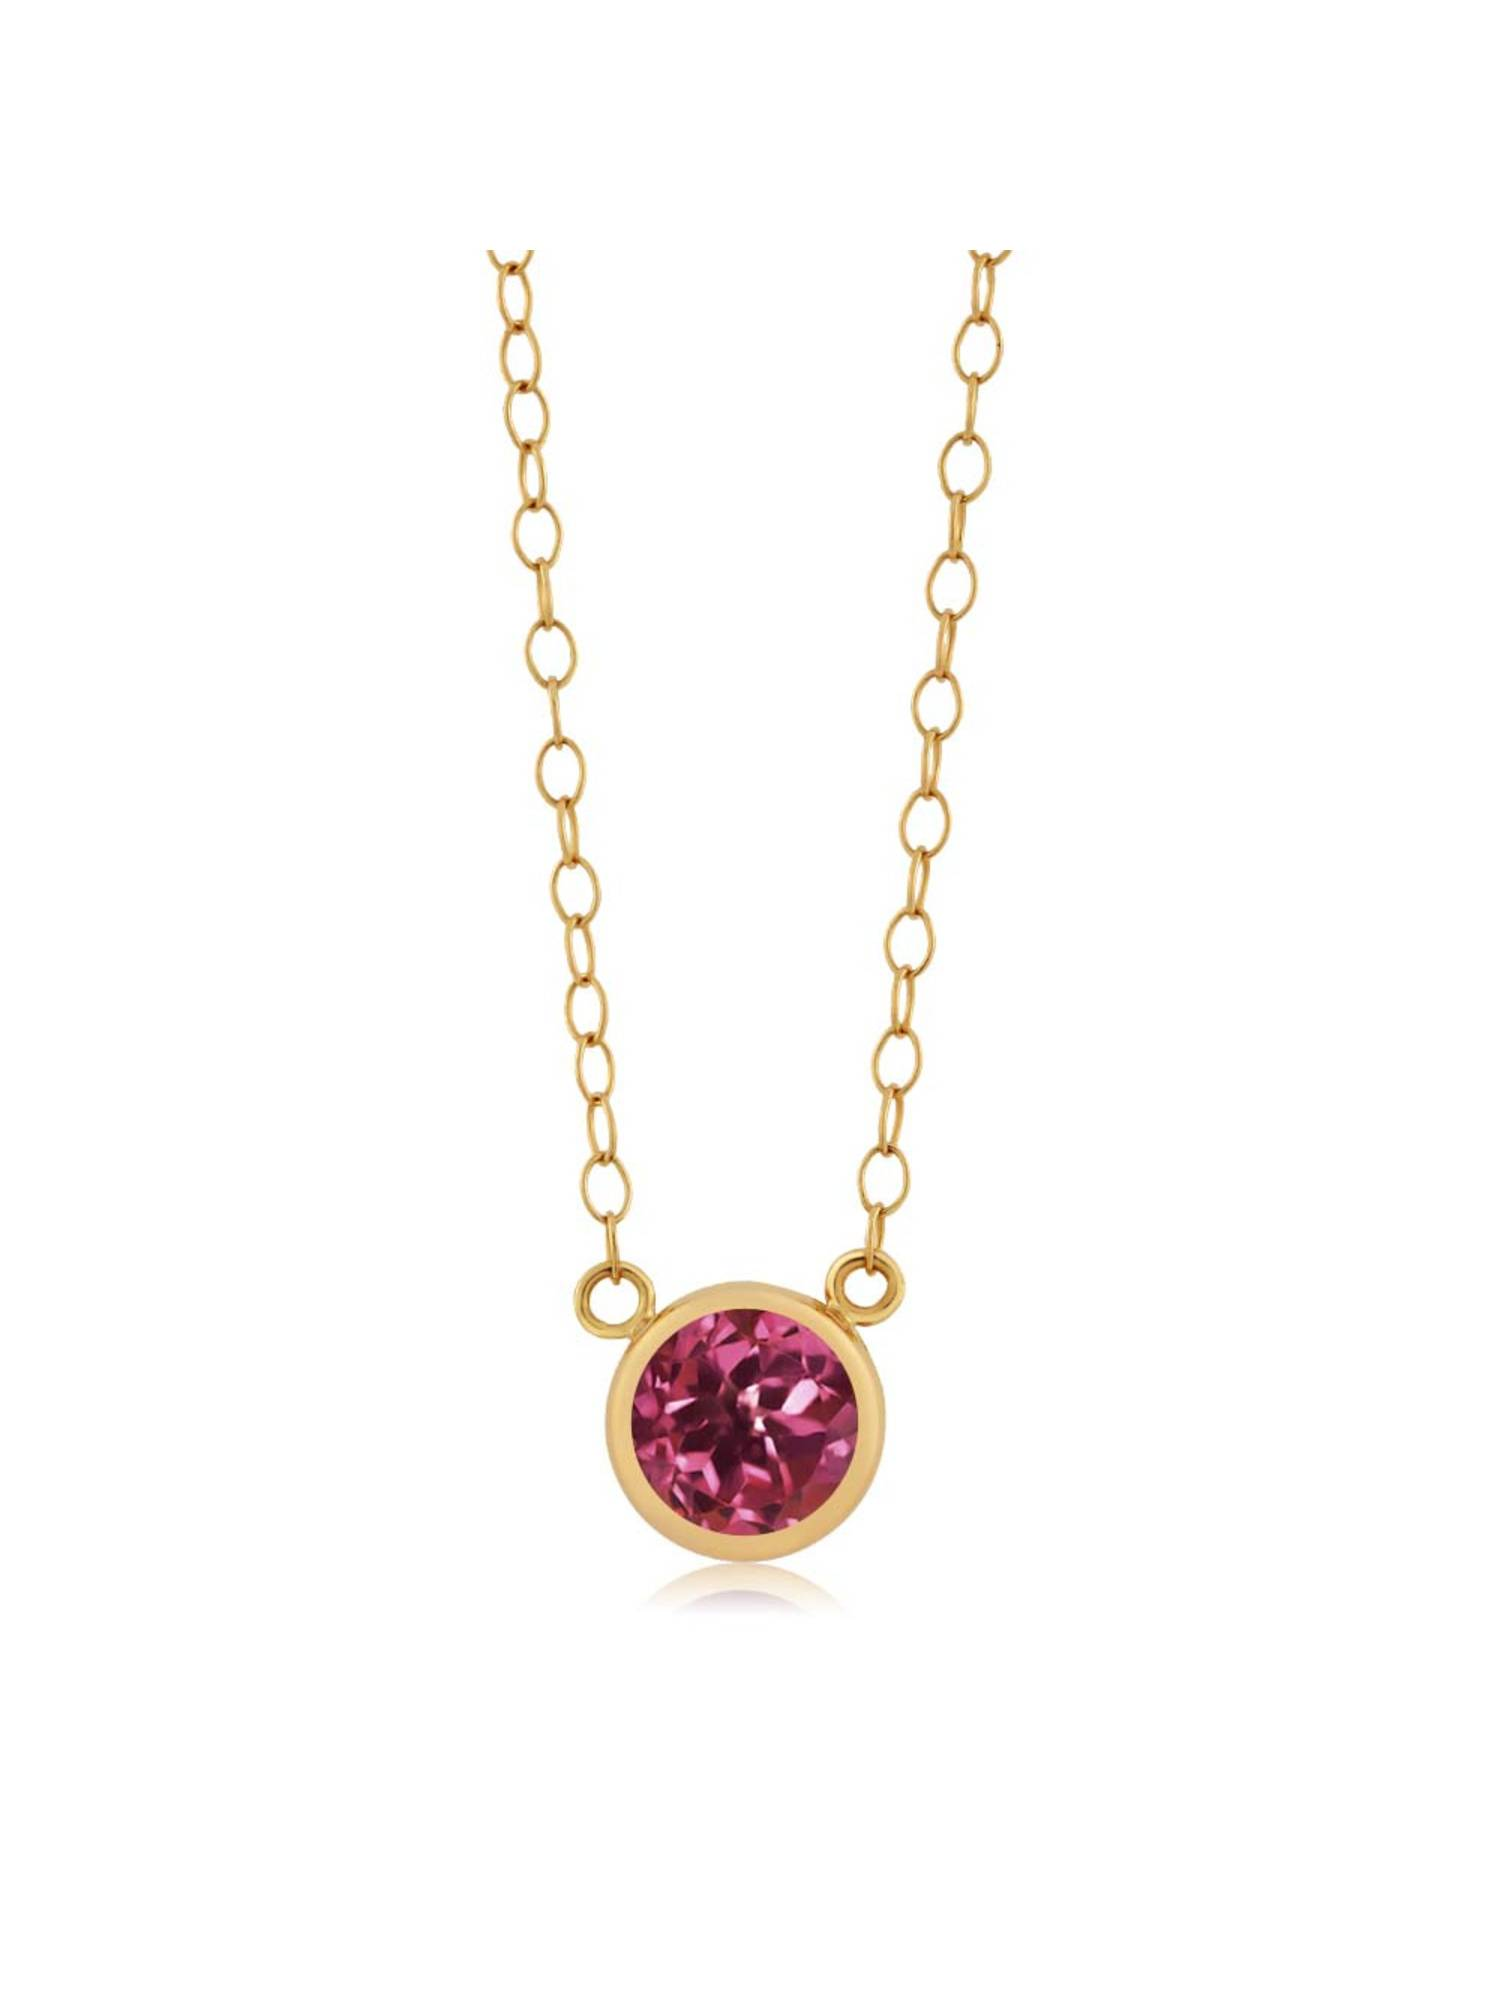 0.50 Ct Round Pink Tourmaline AA 14K Yellow Gold Pendant With Chain by